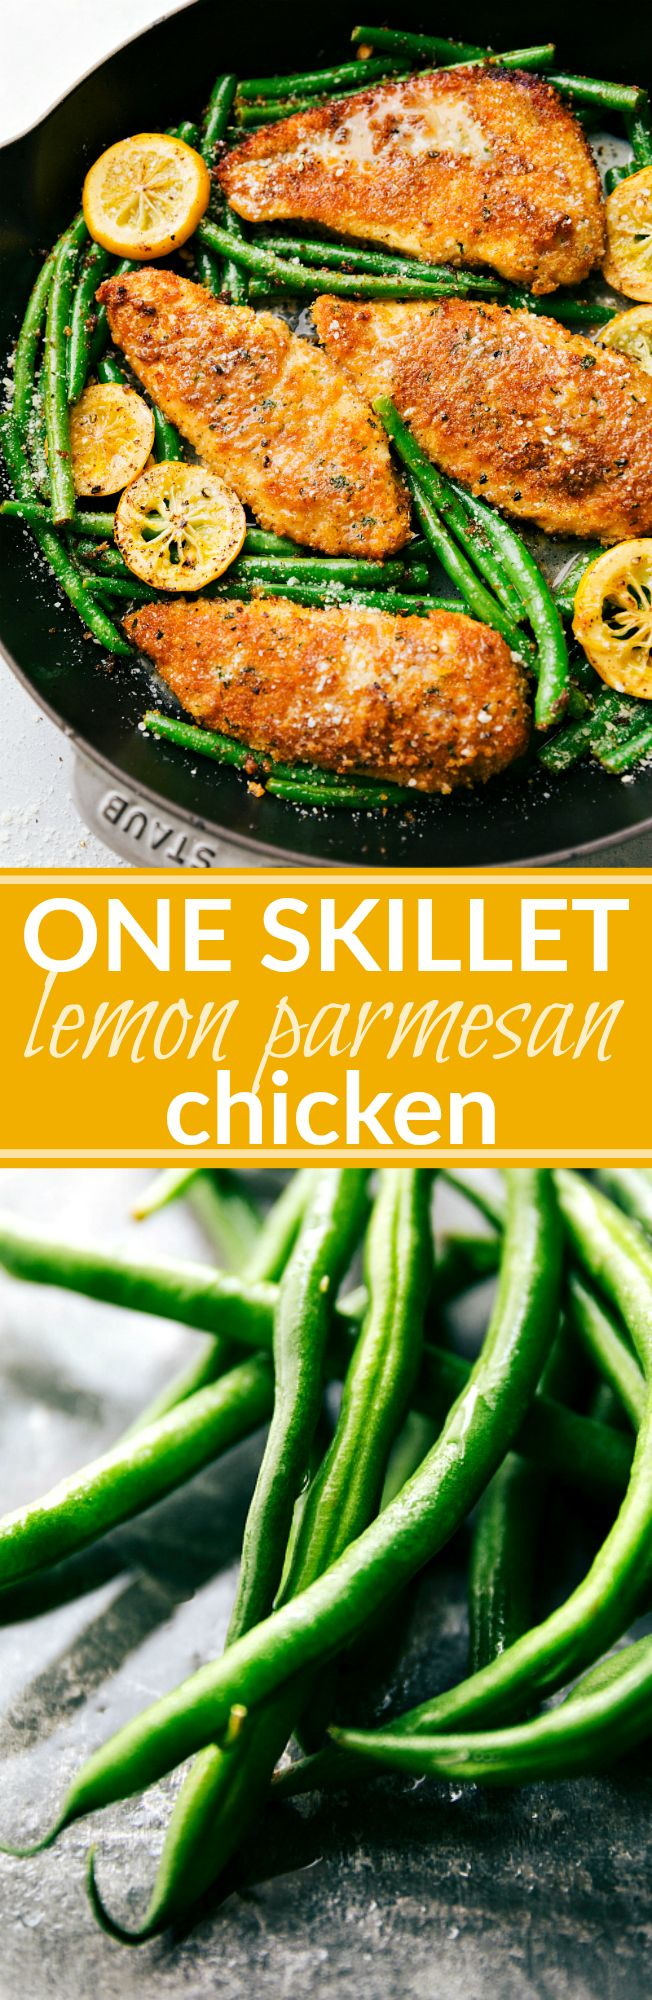 ONE SKILLET easy lemon parmesan chicken and veggies! Delicious and quick to make; 30-minute meal with little clean-up! via chelseasmessyapron.com